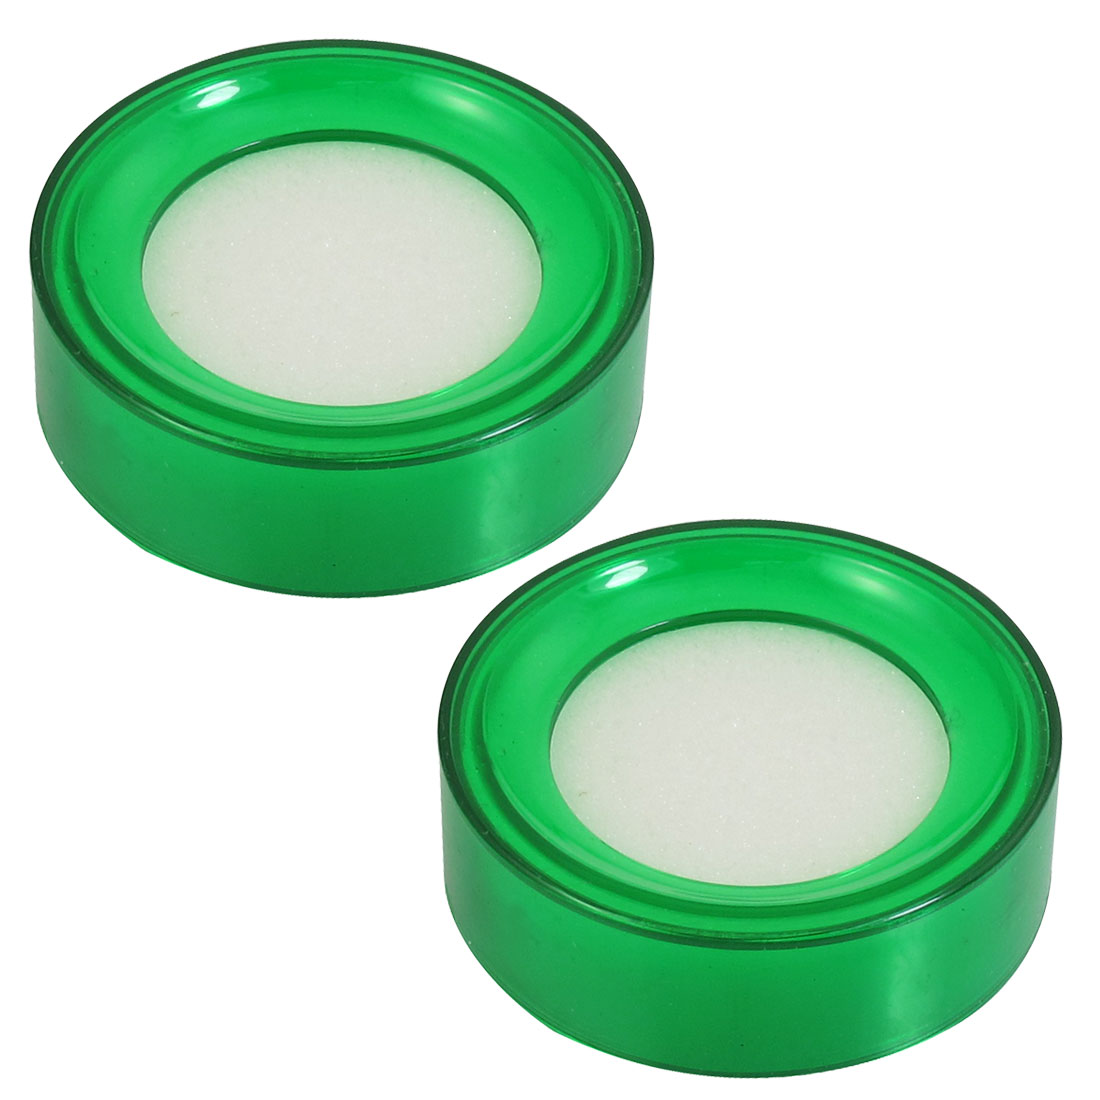 Green Plastic 7cm Dia Round Sponge Finger Wet Money Cashier 2 Pcs